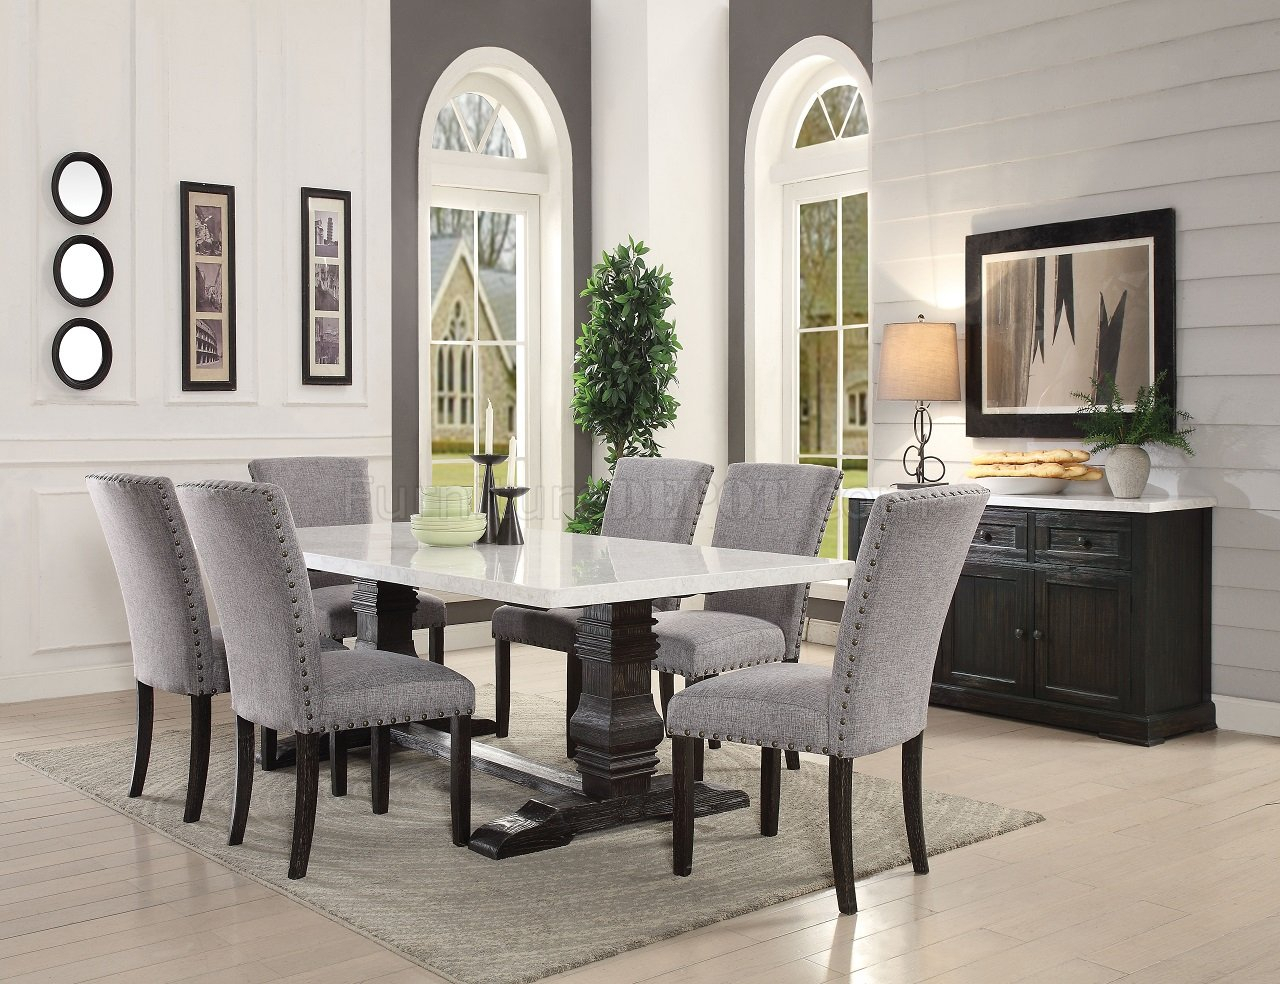 Recusson Marble Top Dining Table 60825 In Dark Oakacme In Newest Nolan Round Pedestal Dining Tables (View 20 of 25)